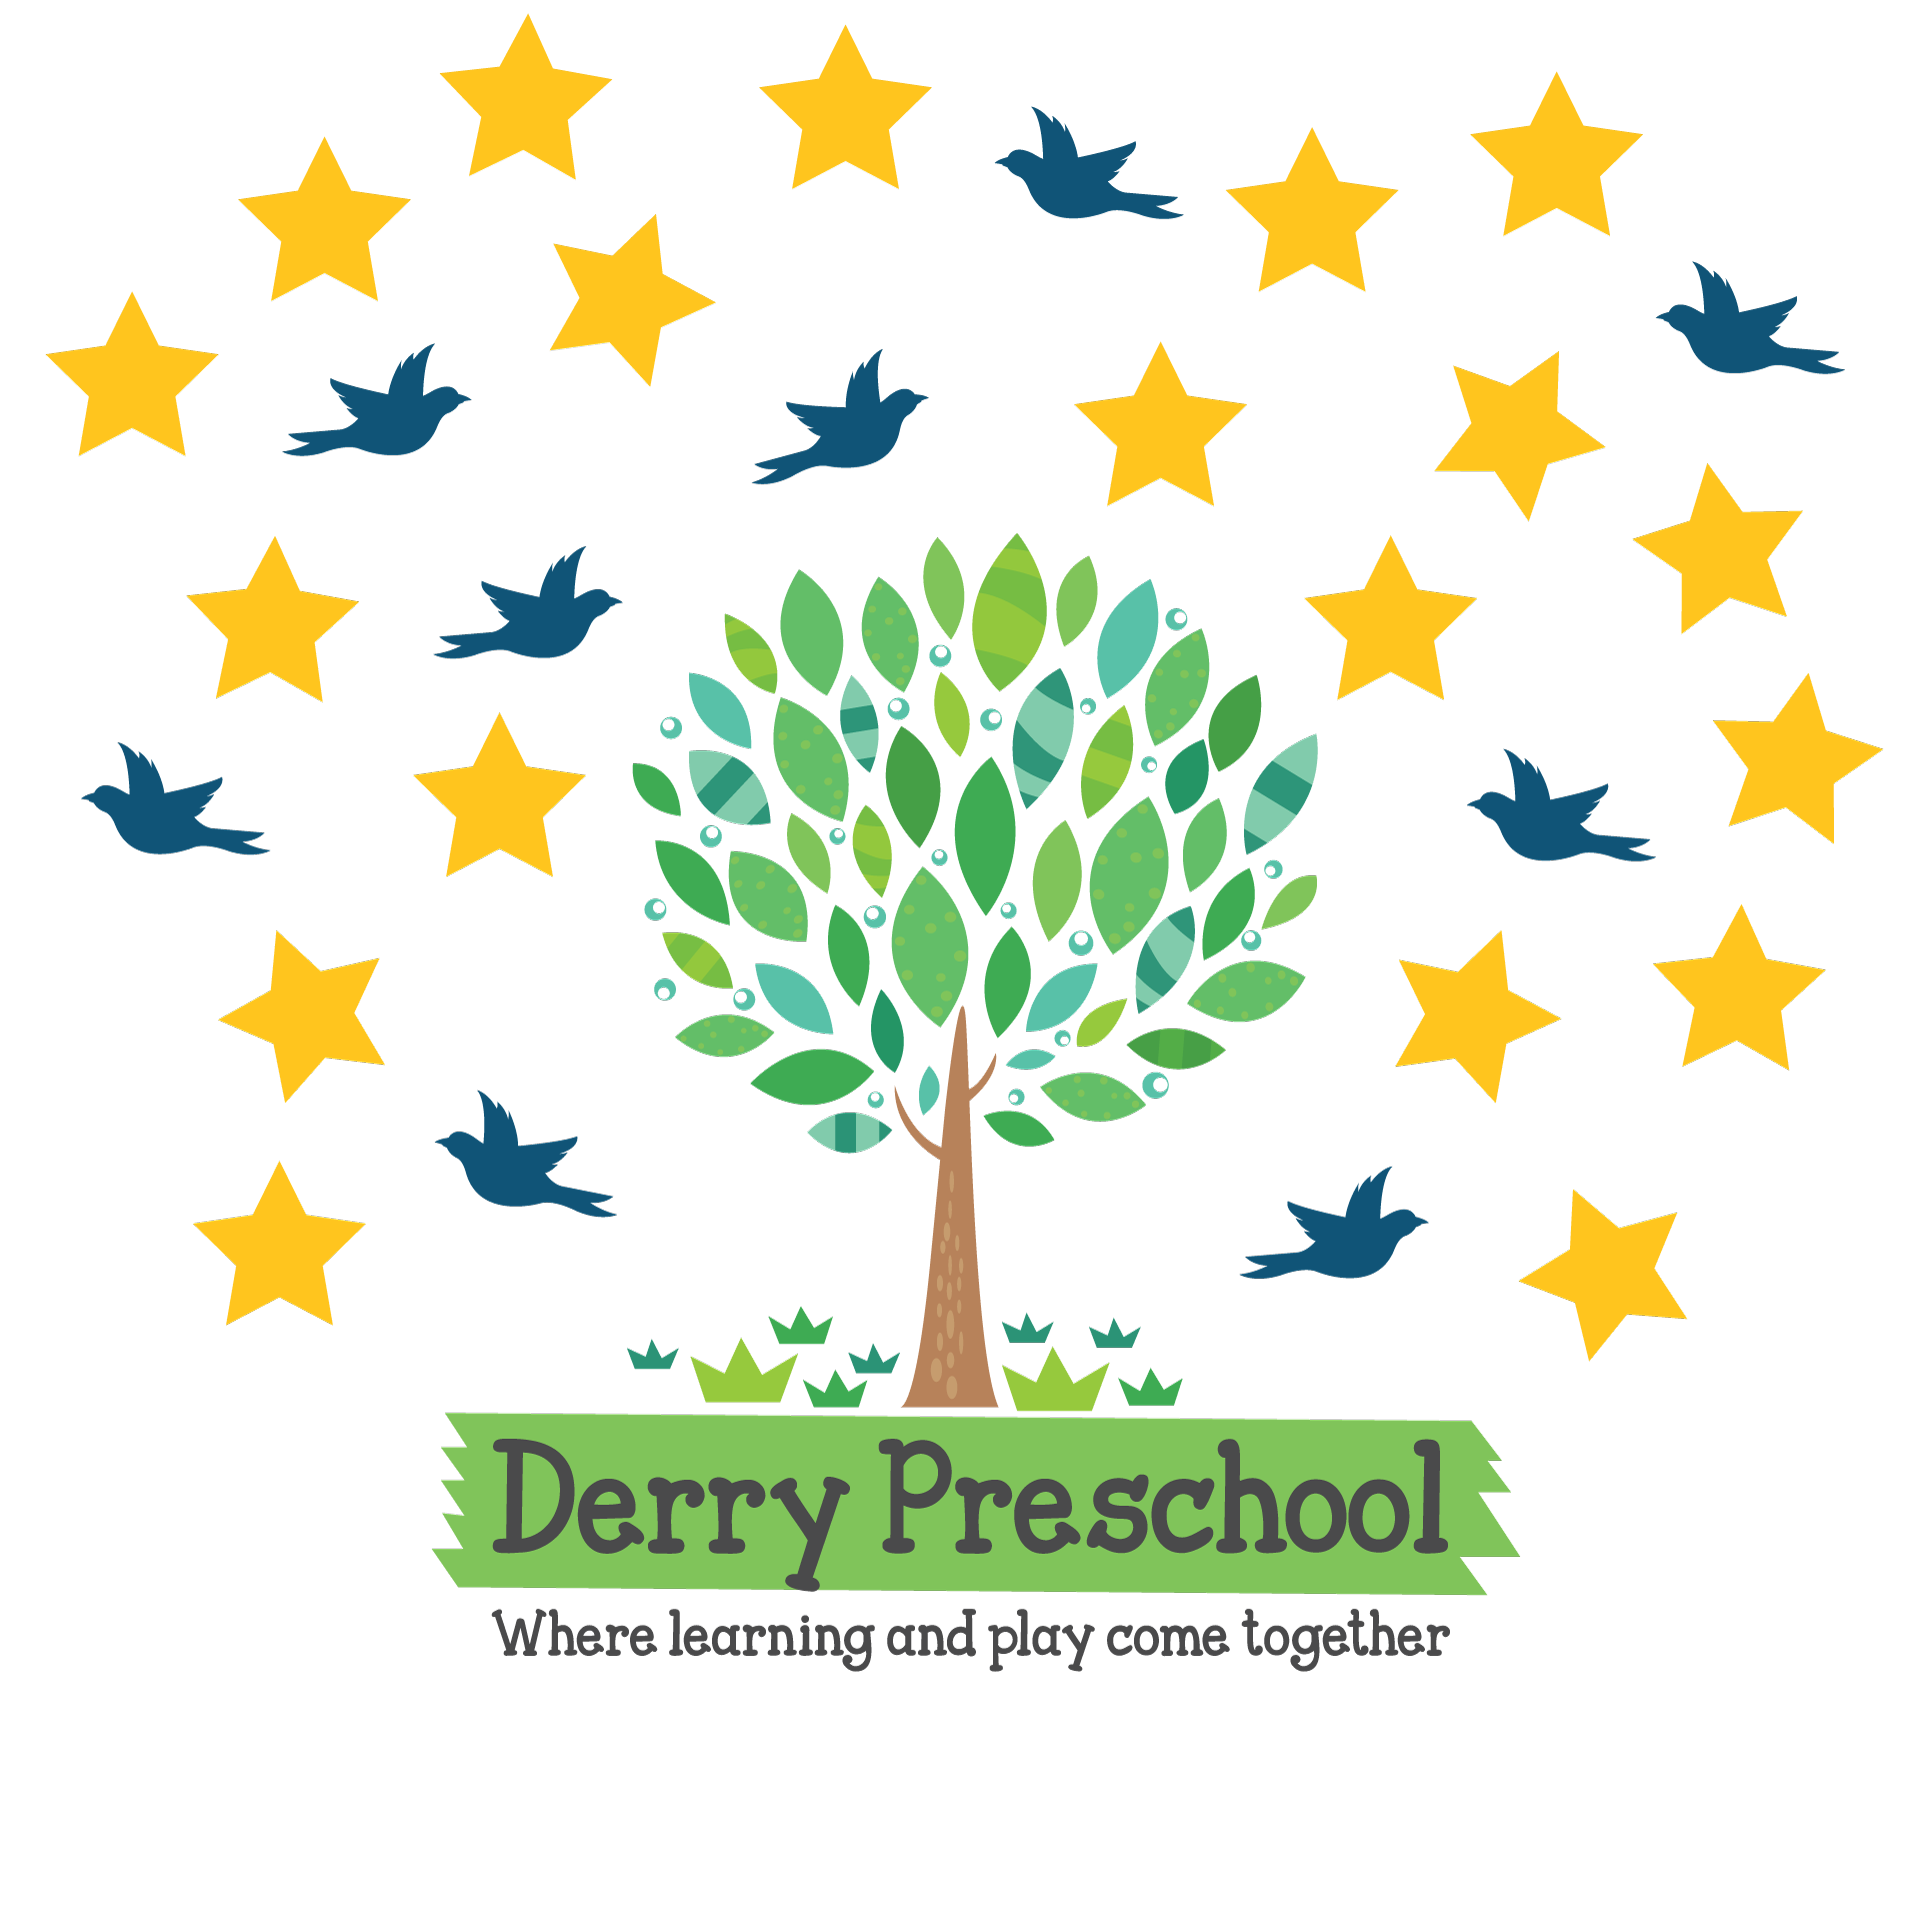 Derry Preschool in Derry Township Licensed, nonsectarian, Private, nonprofit Preschool with all certified teachers! Serving families in Hummelstown, Palmyria, Middletown, Elizabethtown, Hershey with fantastic education. Holding all certifications & up to date clearances!